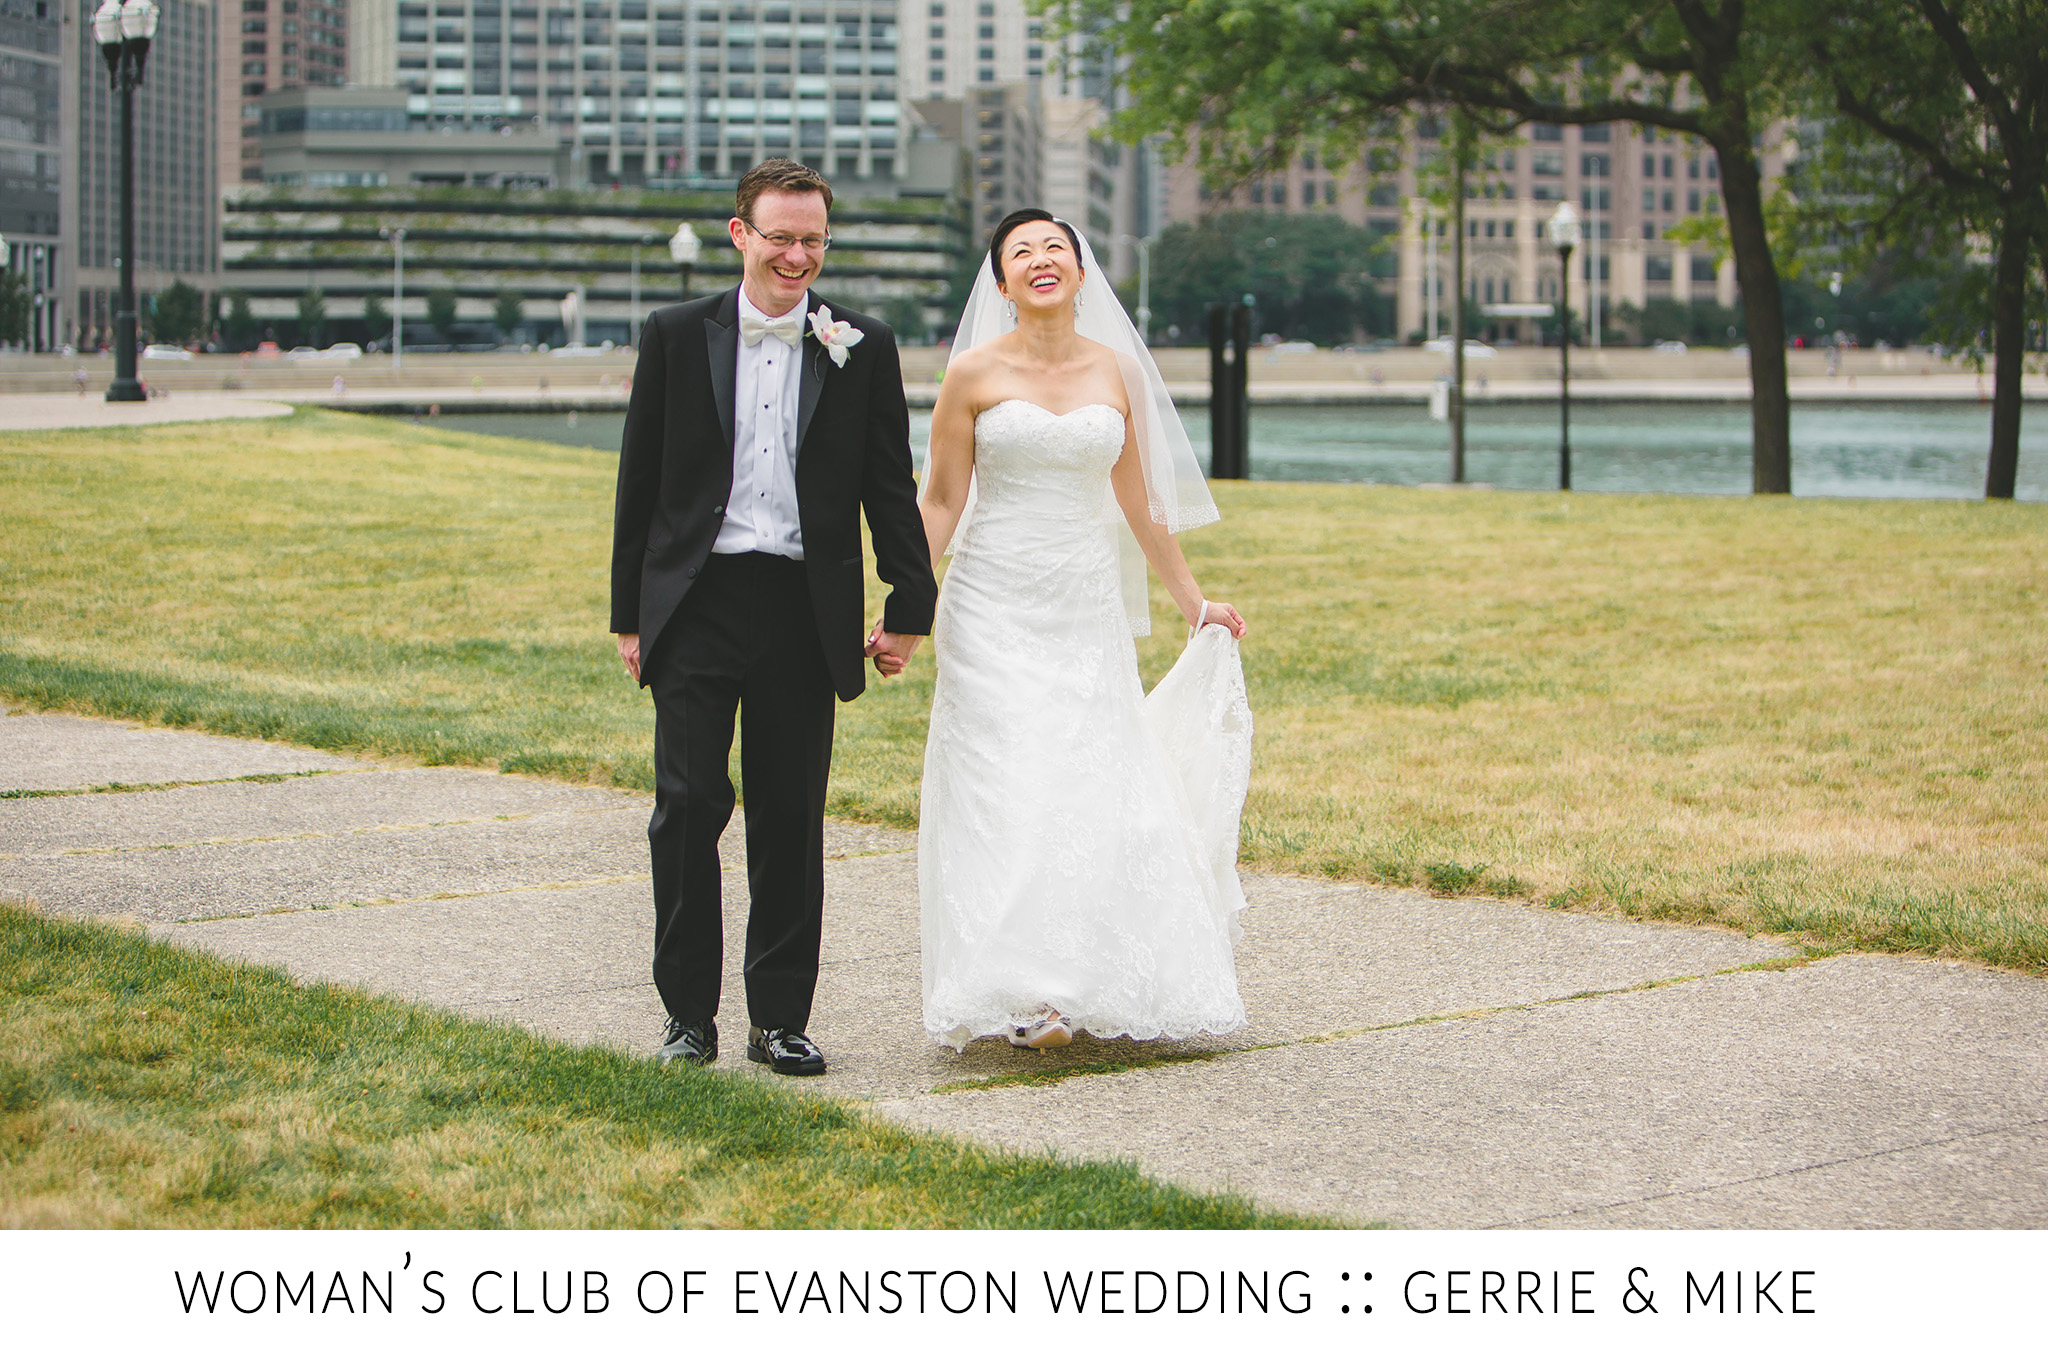 Woman's Club of Evanston Wedding